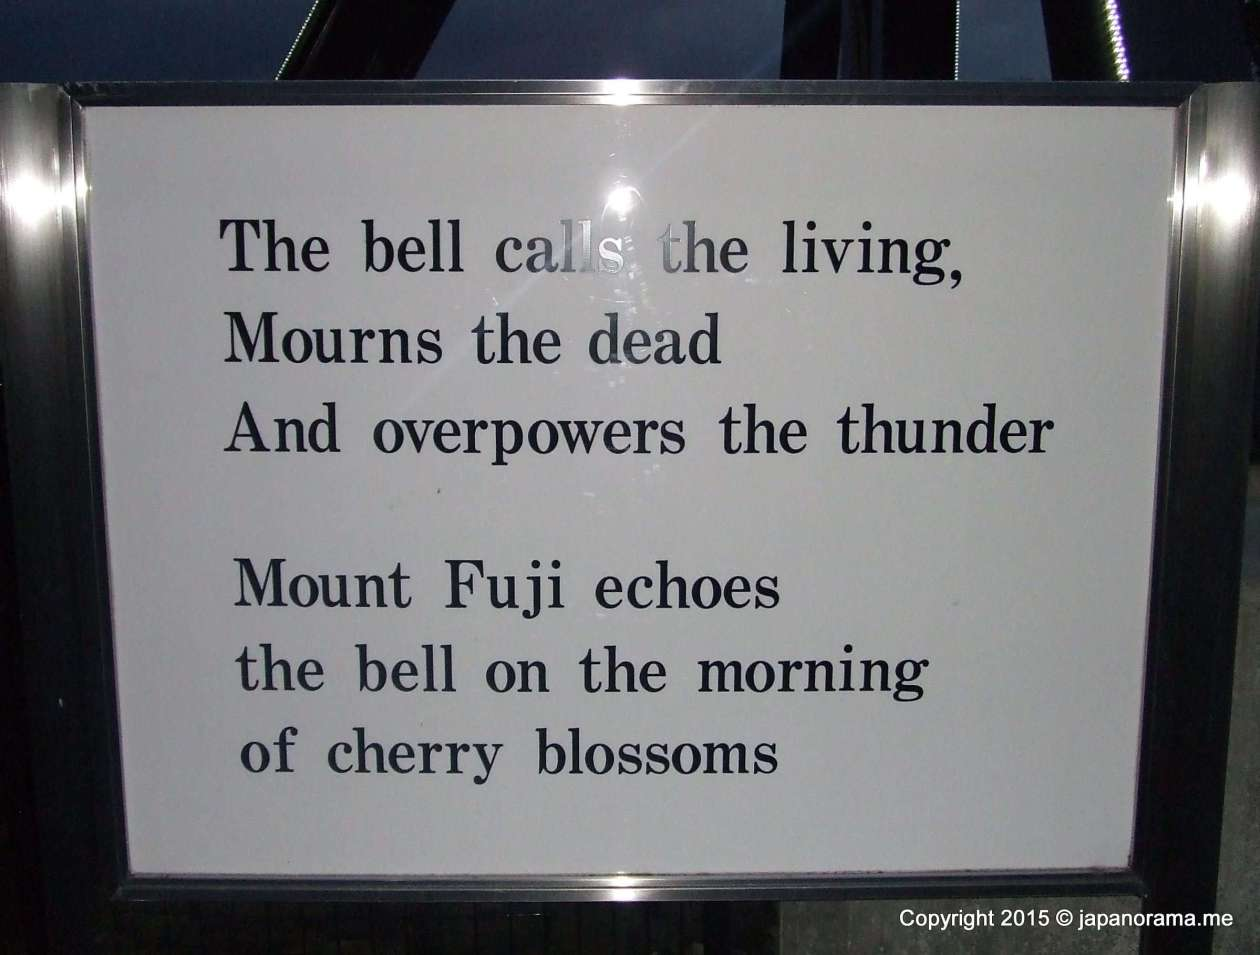 The Bell of Love's message at Toki no sumika